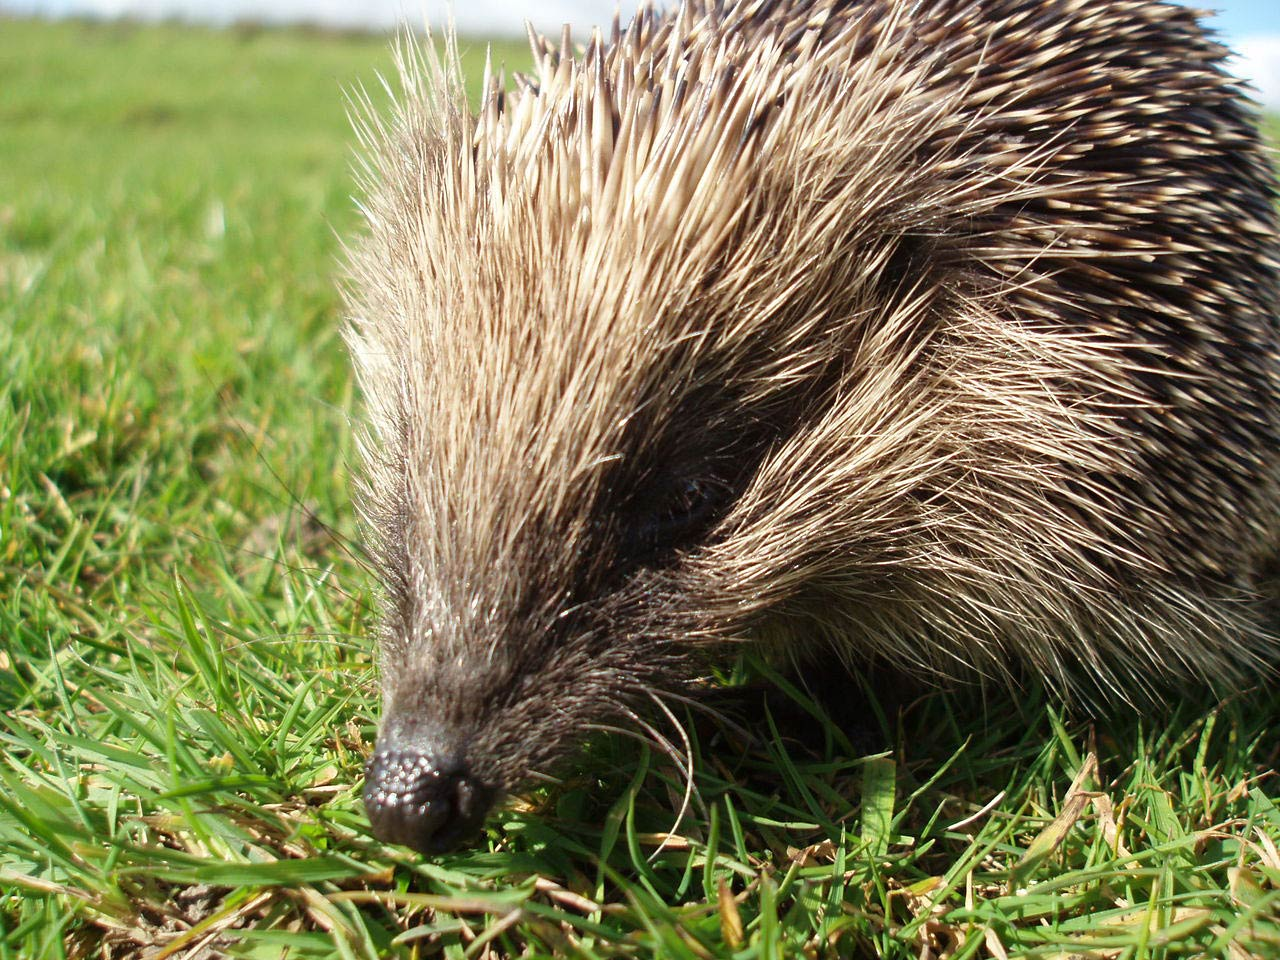 1494878236 maxresdefault also hedgehog wallpaper 1 moreover s792746644104274745 p1 i1 w1265 moreover 9d8f5f9430bfdadfaf08cee7b5da8e37 furthermore 35i0ewk moreover Blank Weekly Schedule free together with Kid Coloring Pages My Little Pony Rainbow Dash 4 further  in addition  in addition 150505 MandalaMothersDay 2 besides BcgKxo6Li. on cute coloring pages for s